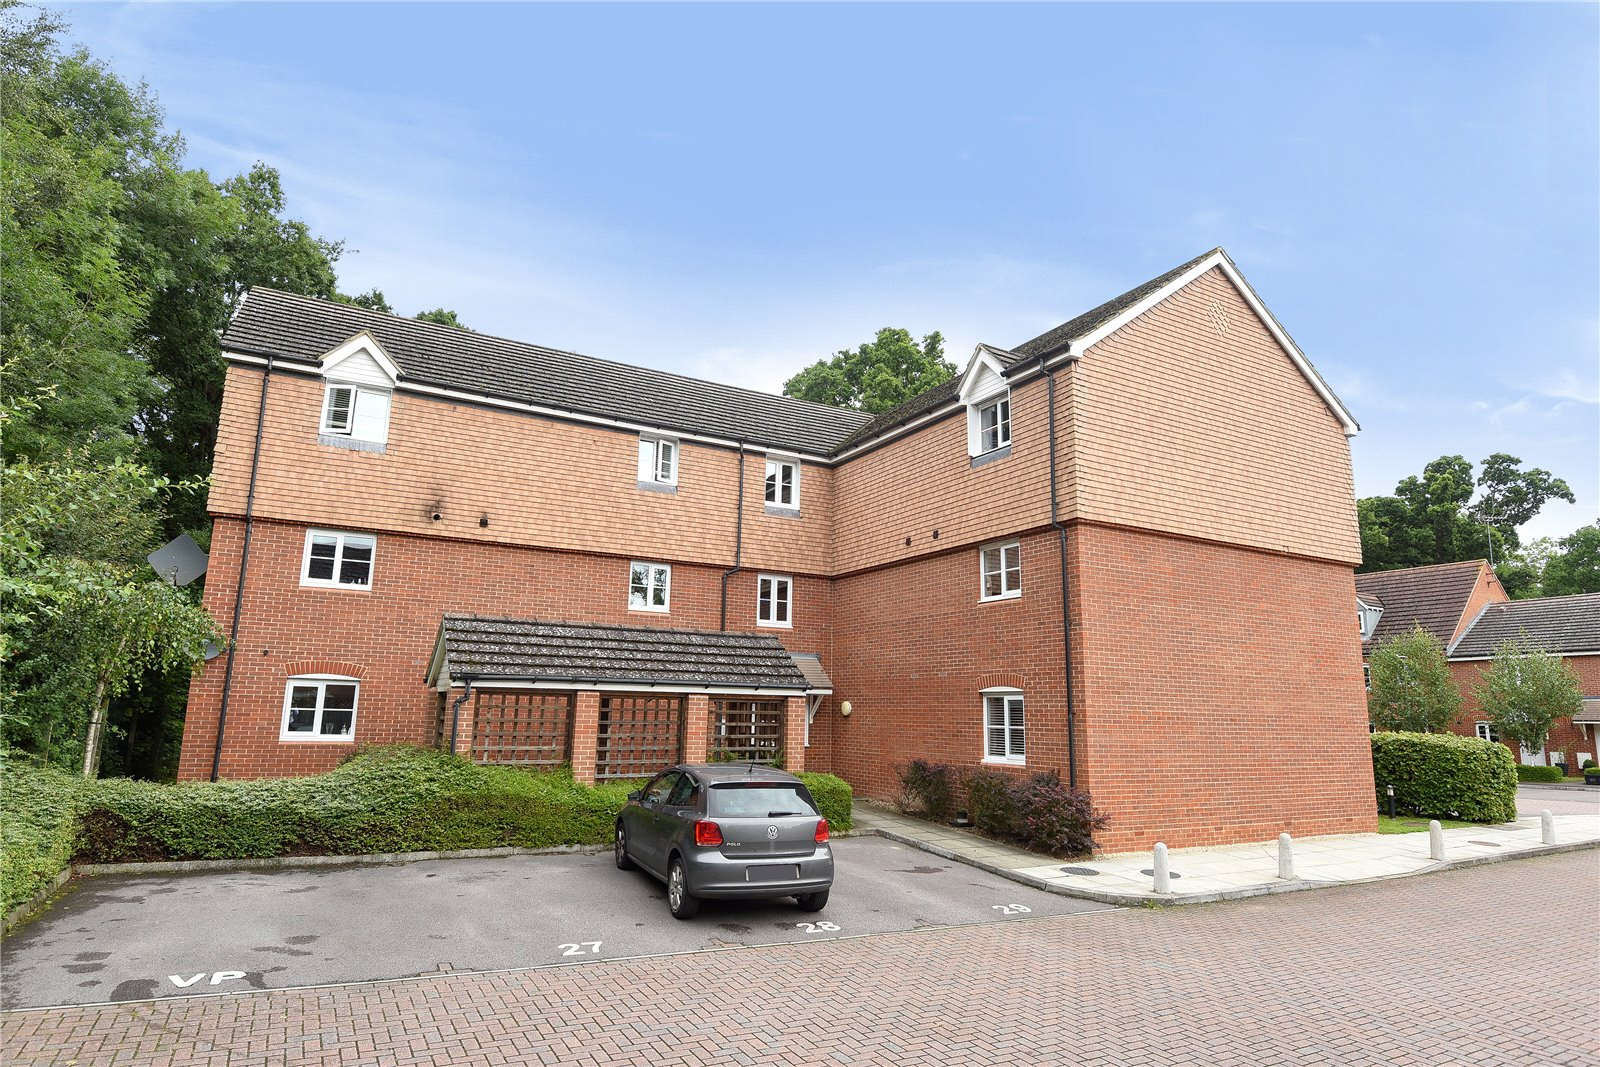 2 Bedrooms Apartment Flat for sale in Poperinghe Way, Arborfield, Reading, Berkshire, RG2